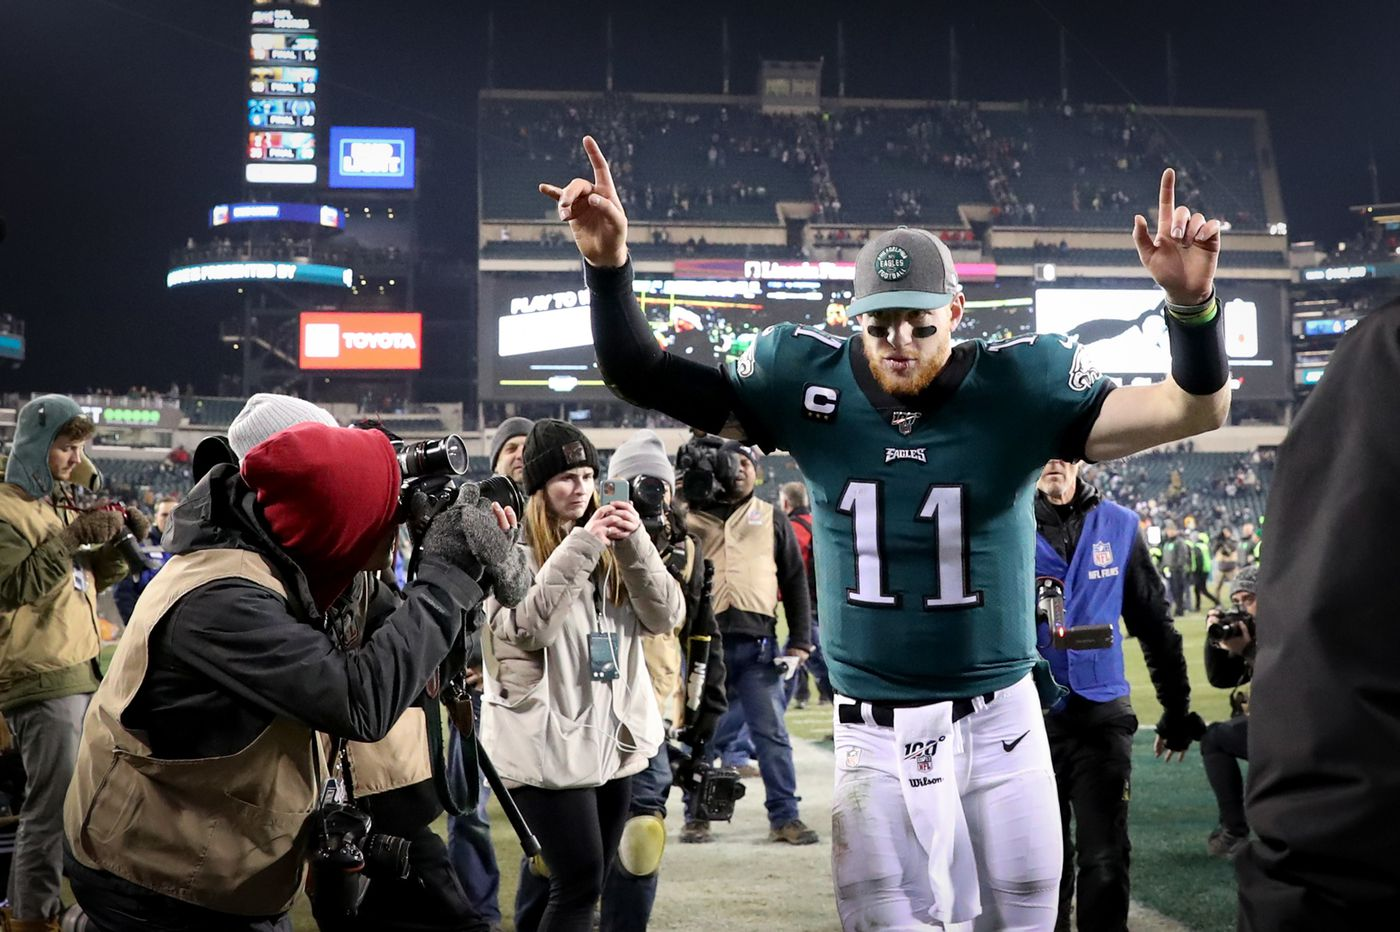 The Eagles' late-season push might not yield a championship, but Carson Wentz can build on it